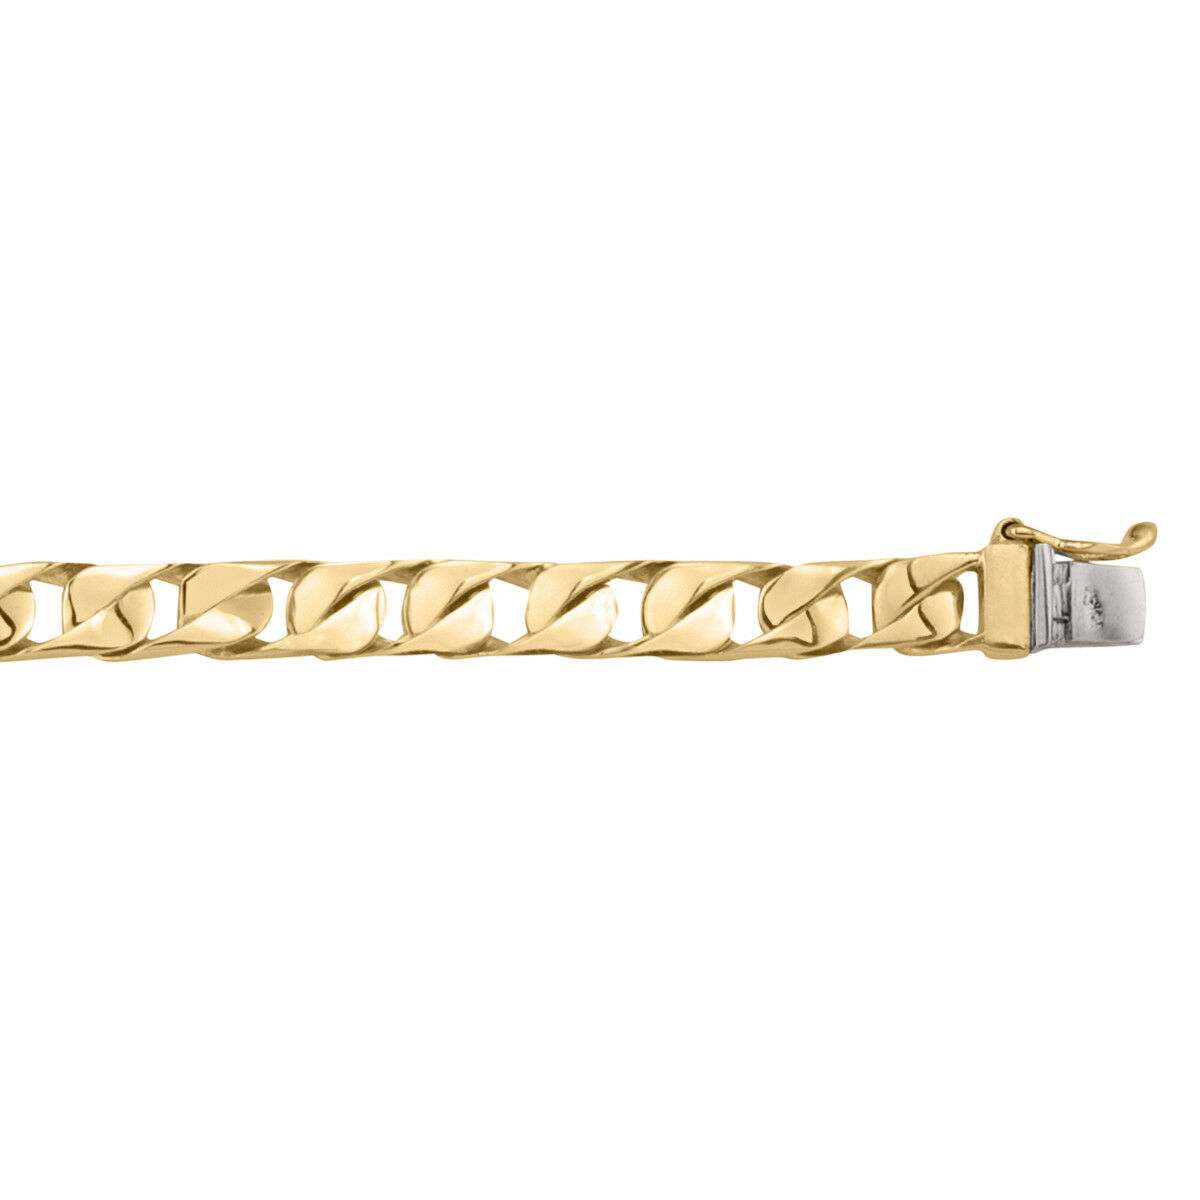 10k - 18k Yellow gold Bracelet, 17.5 - 23.5 grams, 8.5 , 6.1mm, NEW